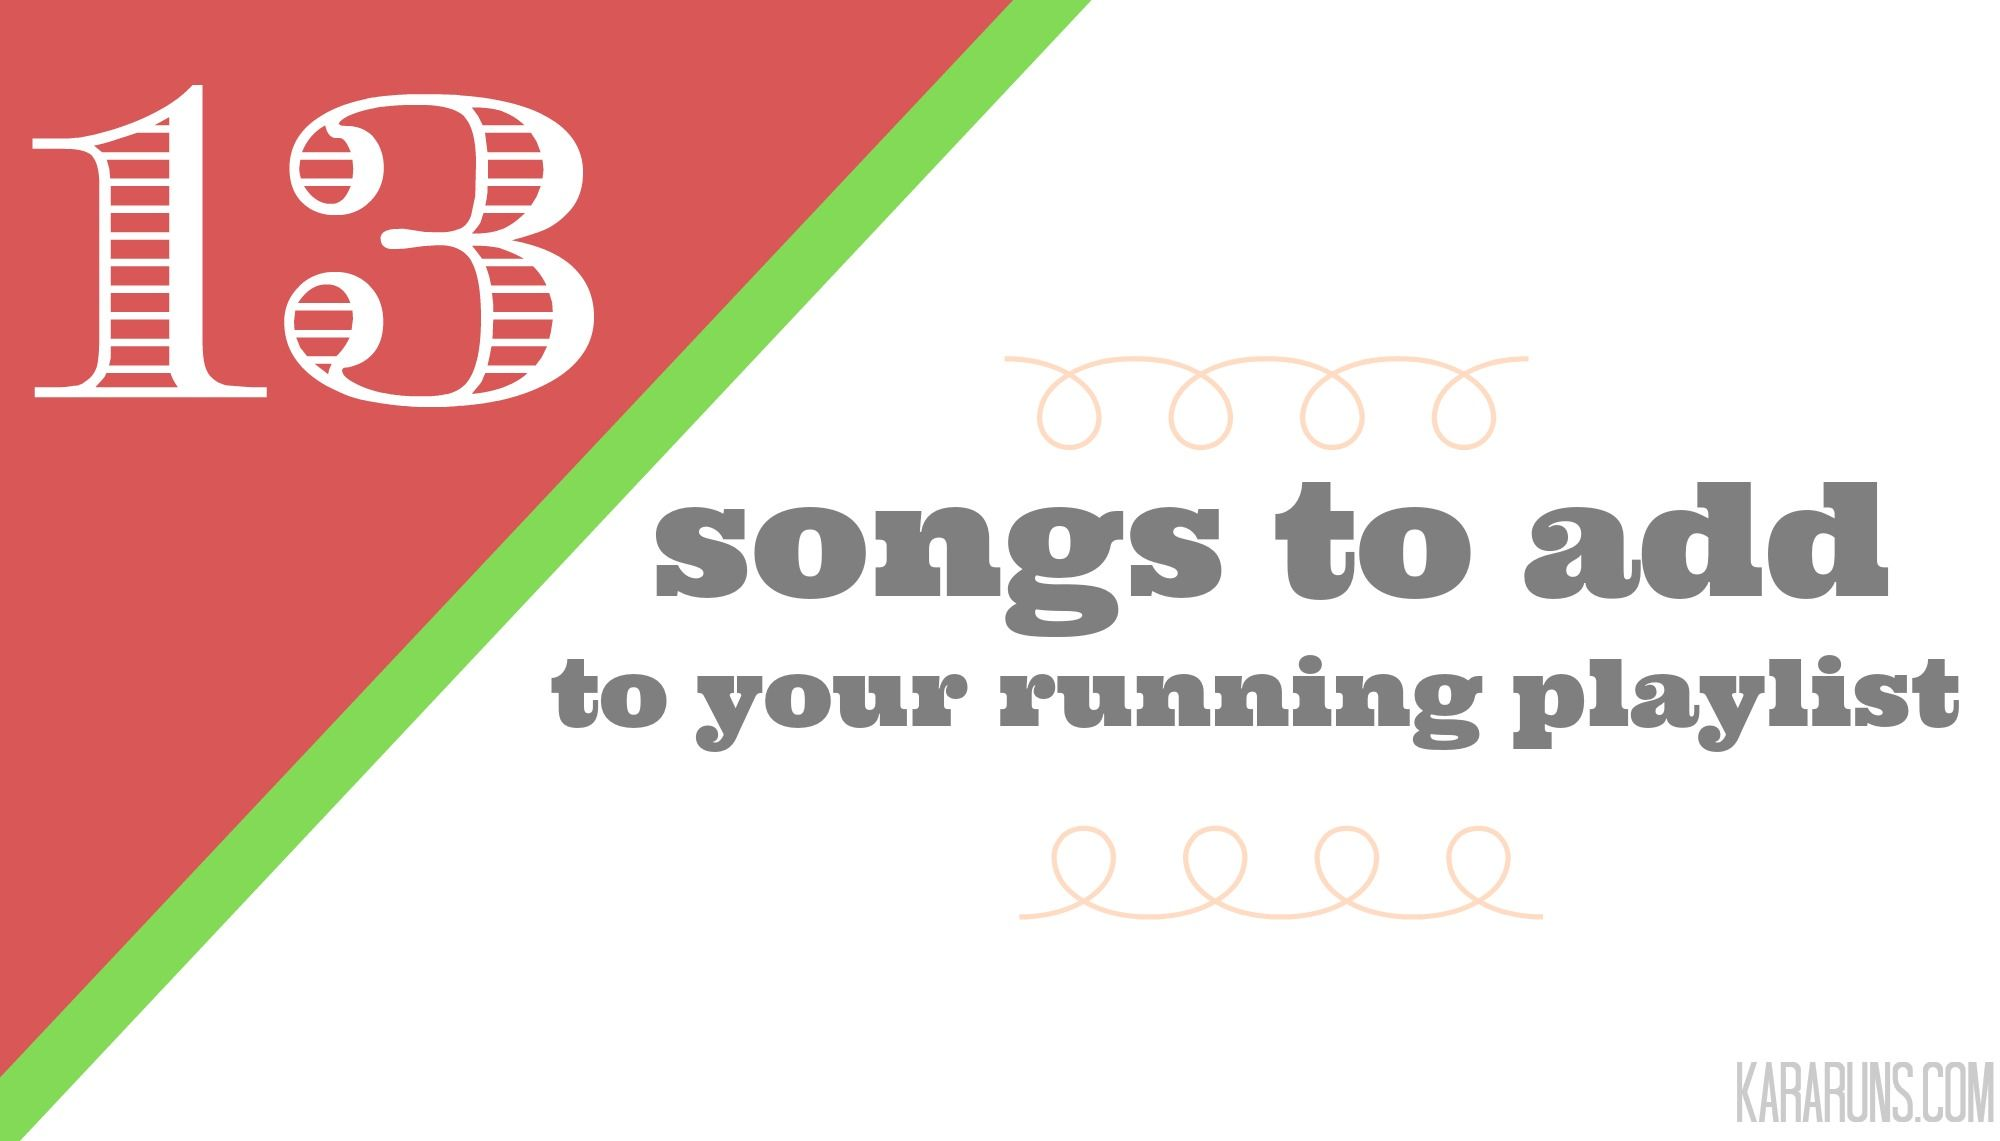 Songs to add to your #running playlist! #fitfluential   http://bit.ly/1BnYwkL